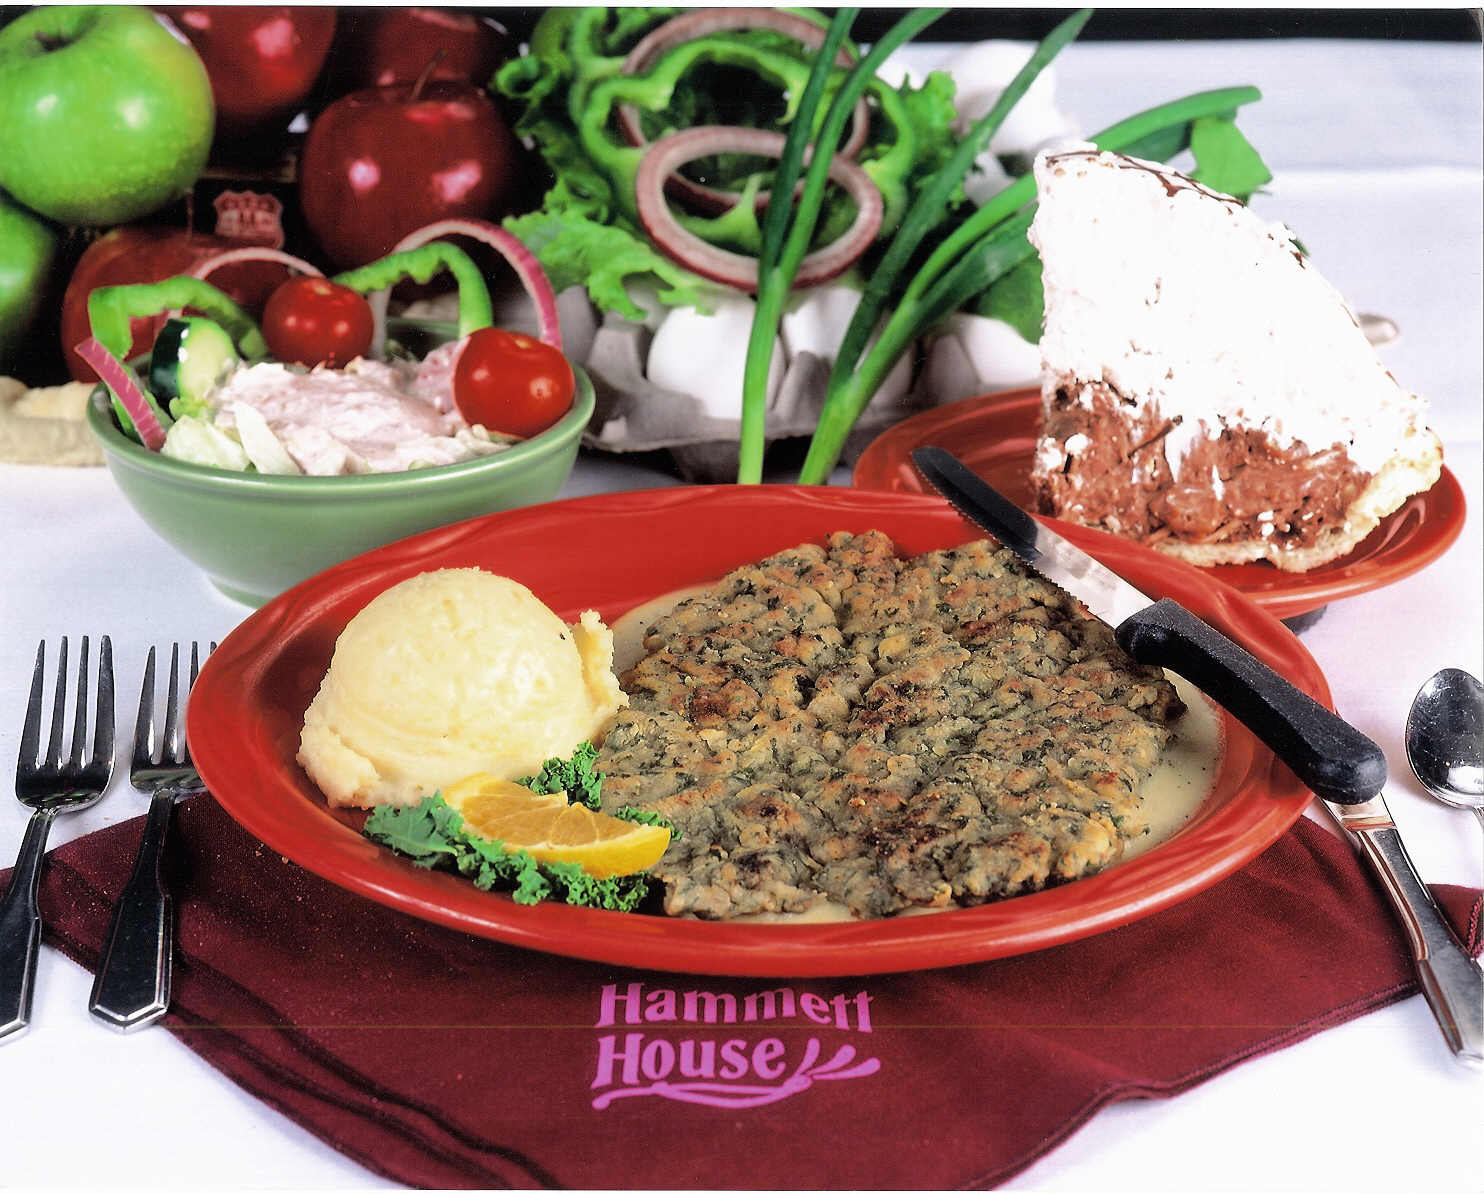 Country Fried Steak at Hammett House Restaurant